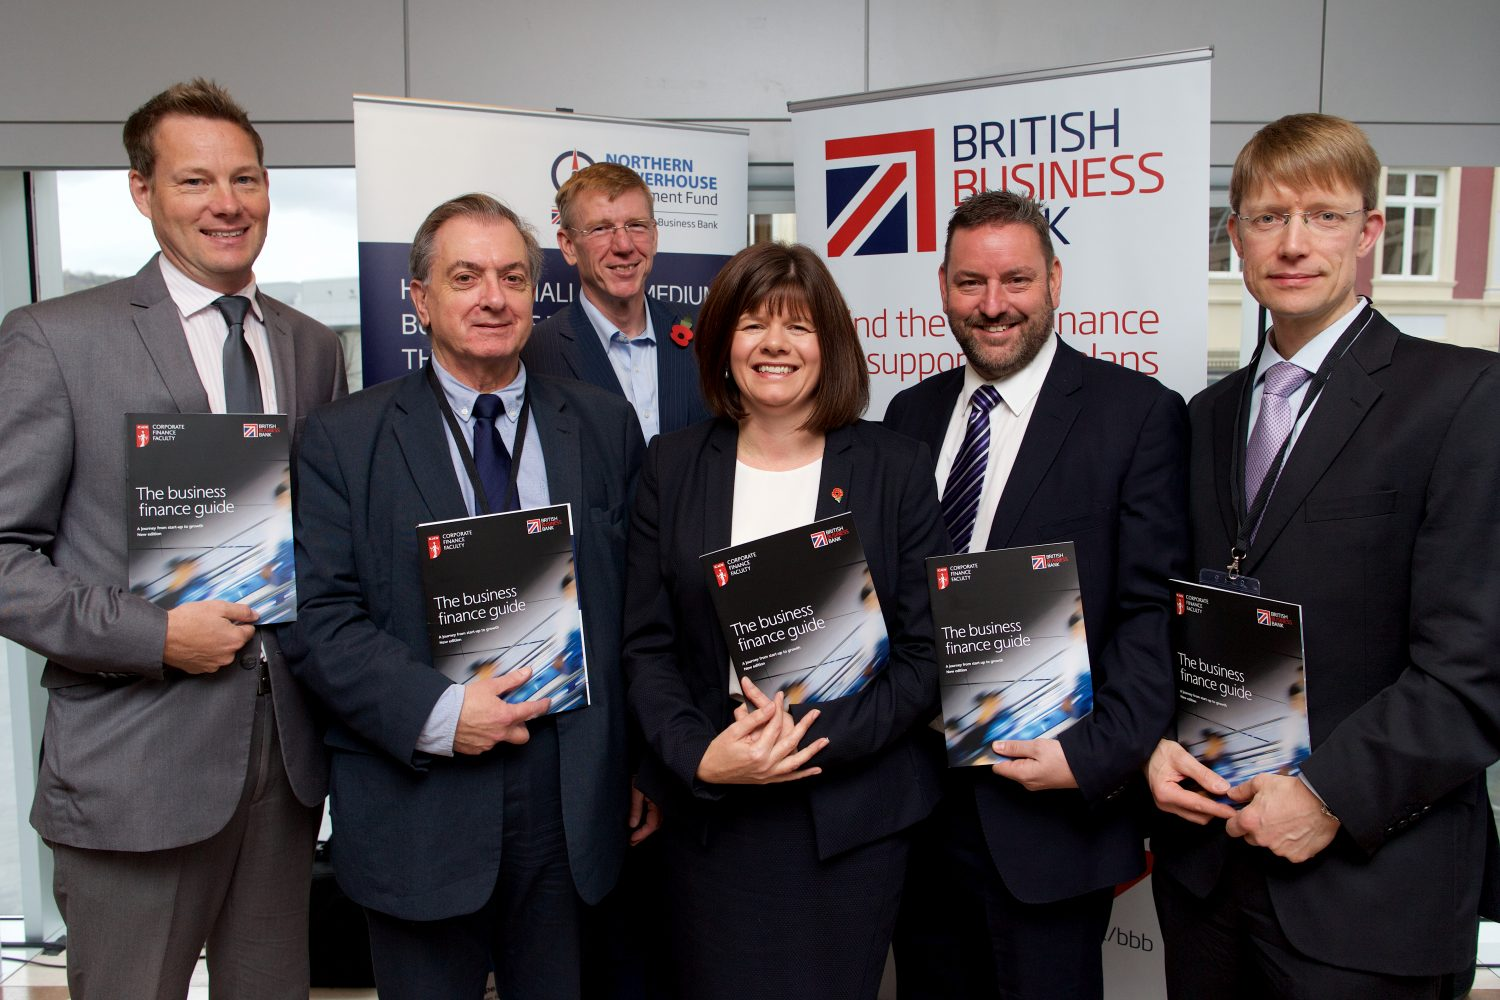 Five suited men and a woman standing around point of sale holding brochures in an office.